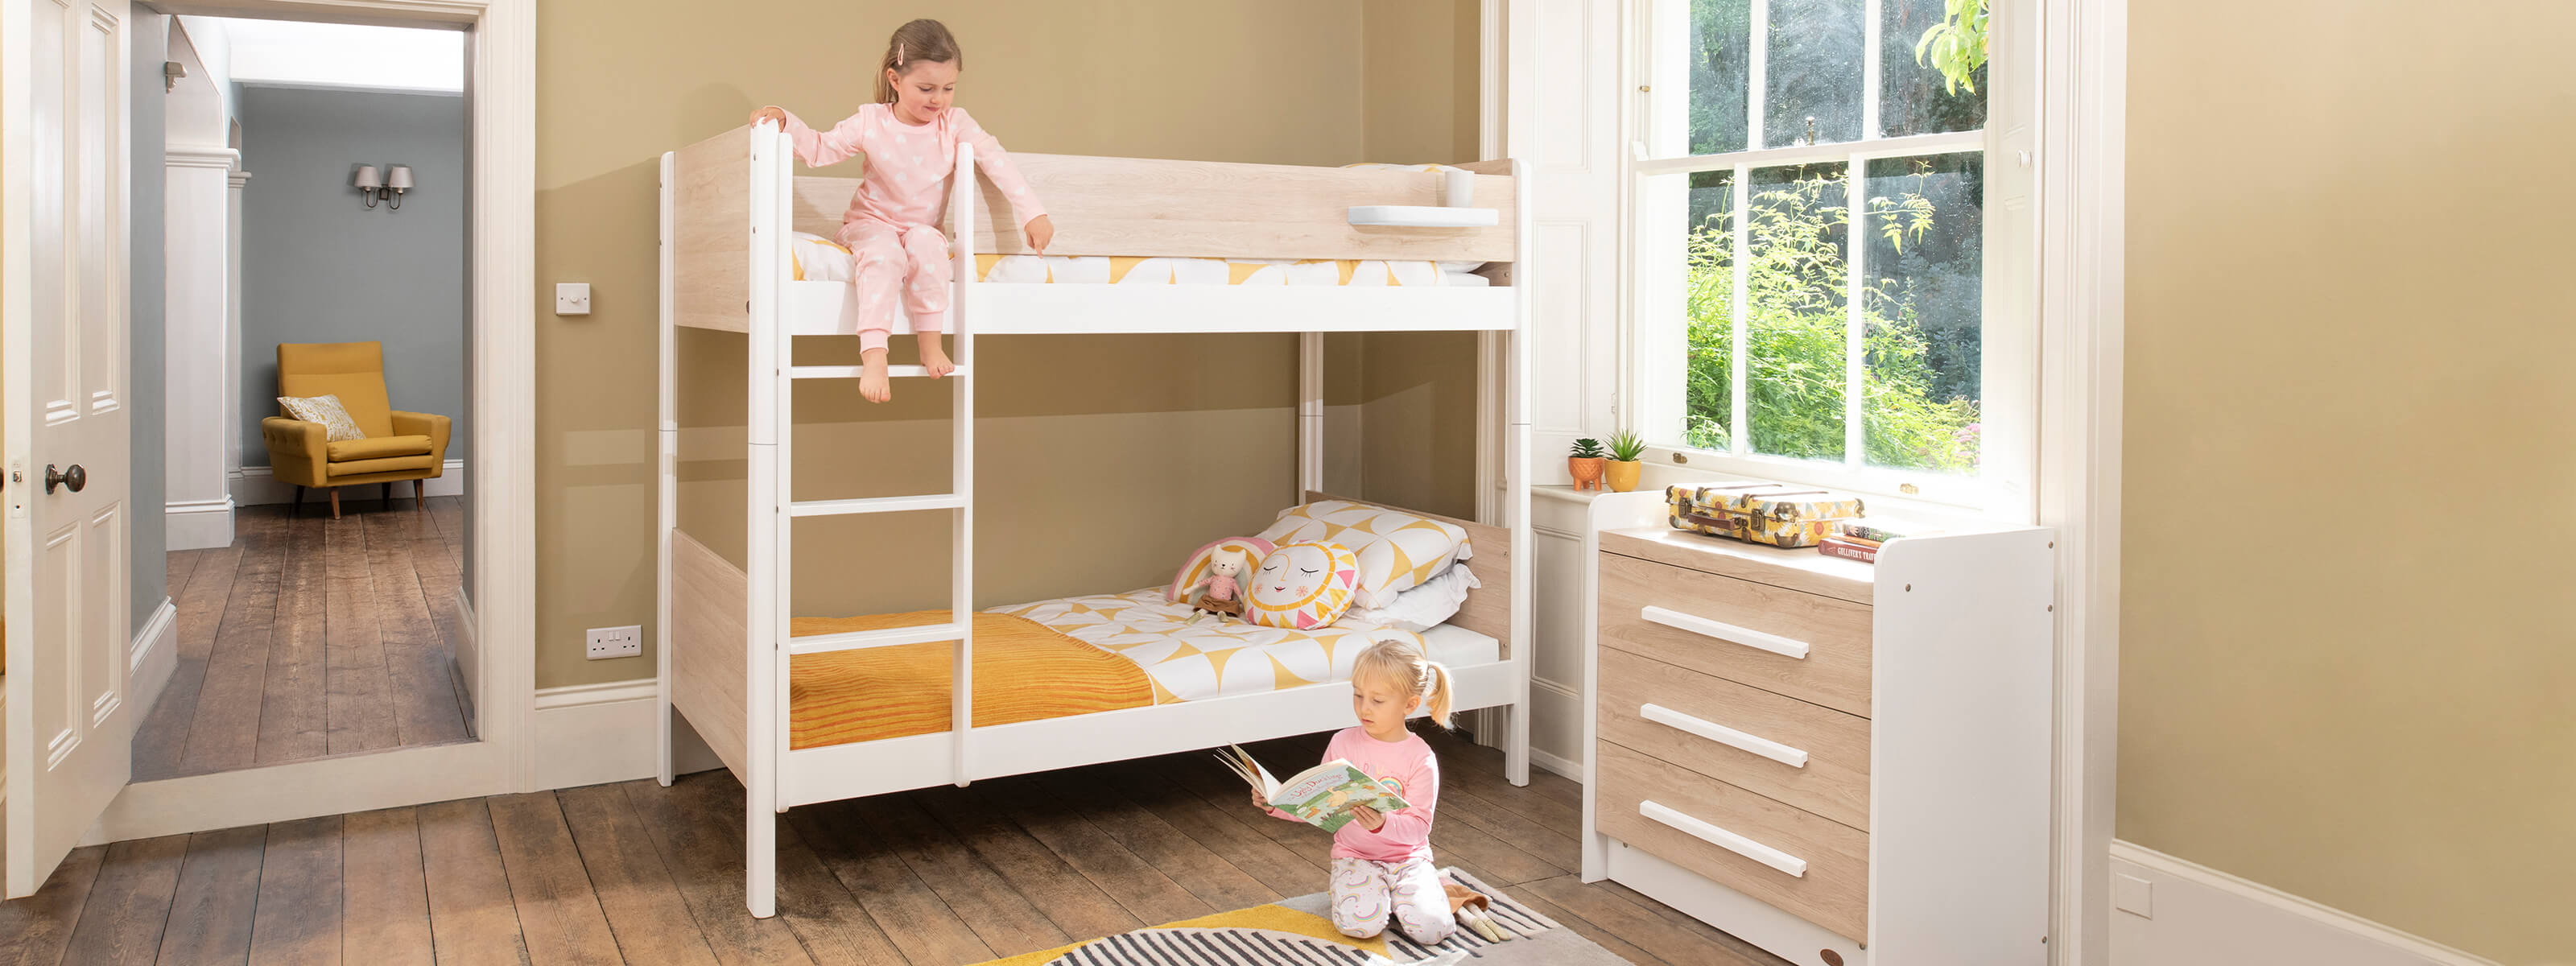 Product_Page_Lifestyles_1600_x_600_Natty_King_Single_Bunk_Bed_BAOA_FORWEB__2x